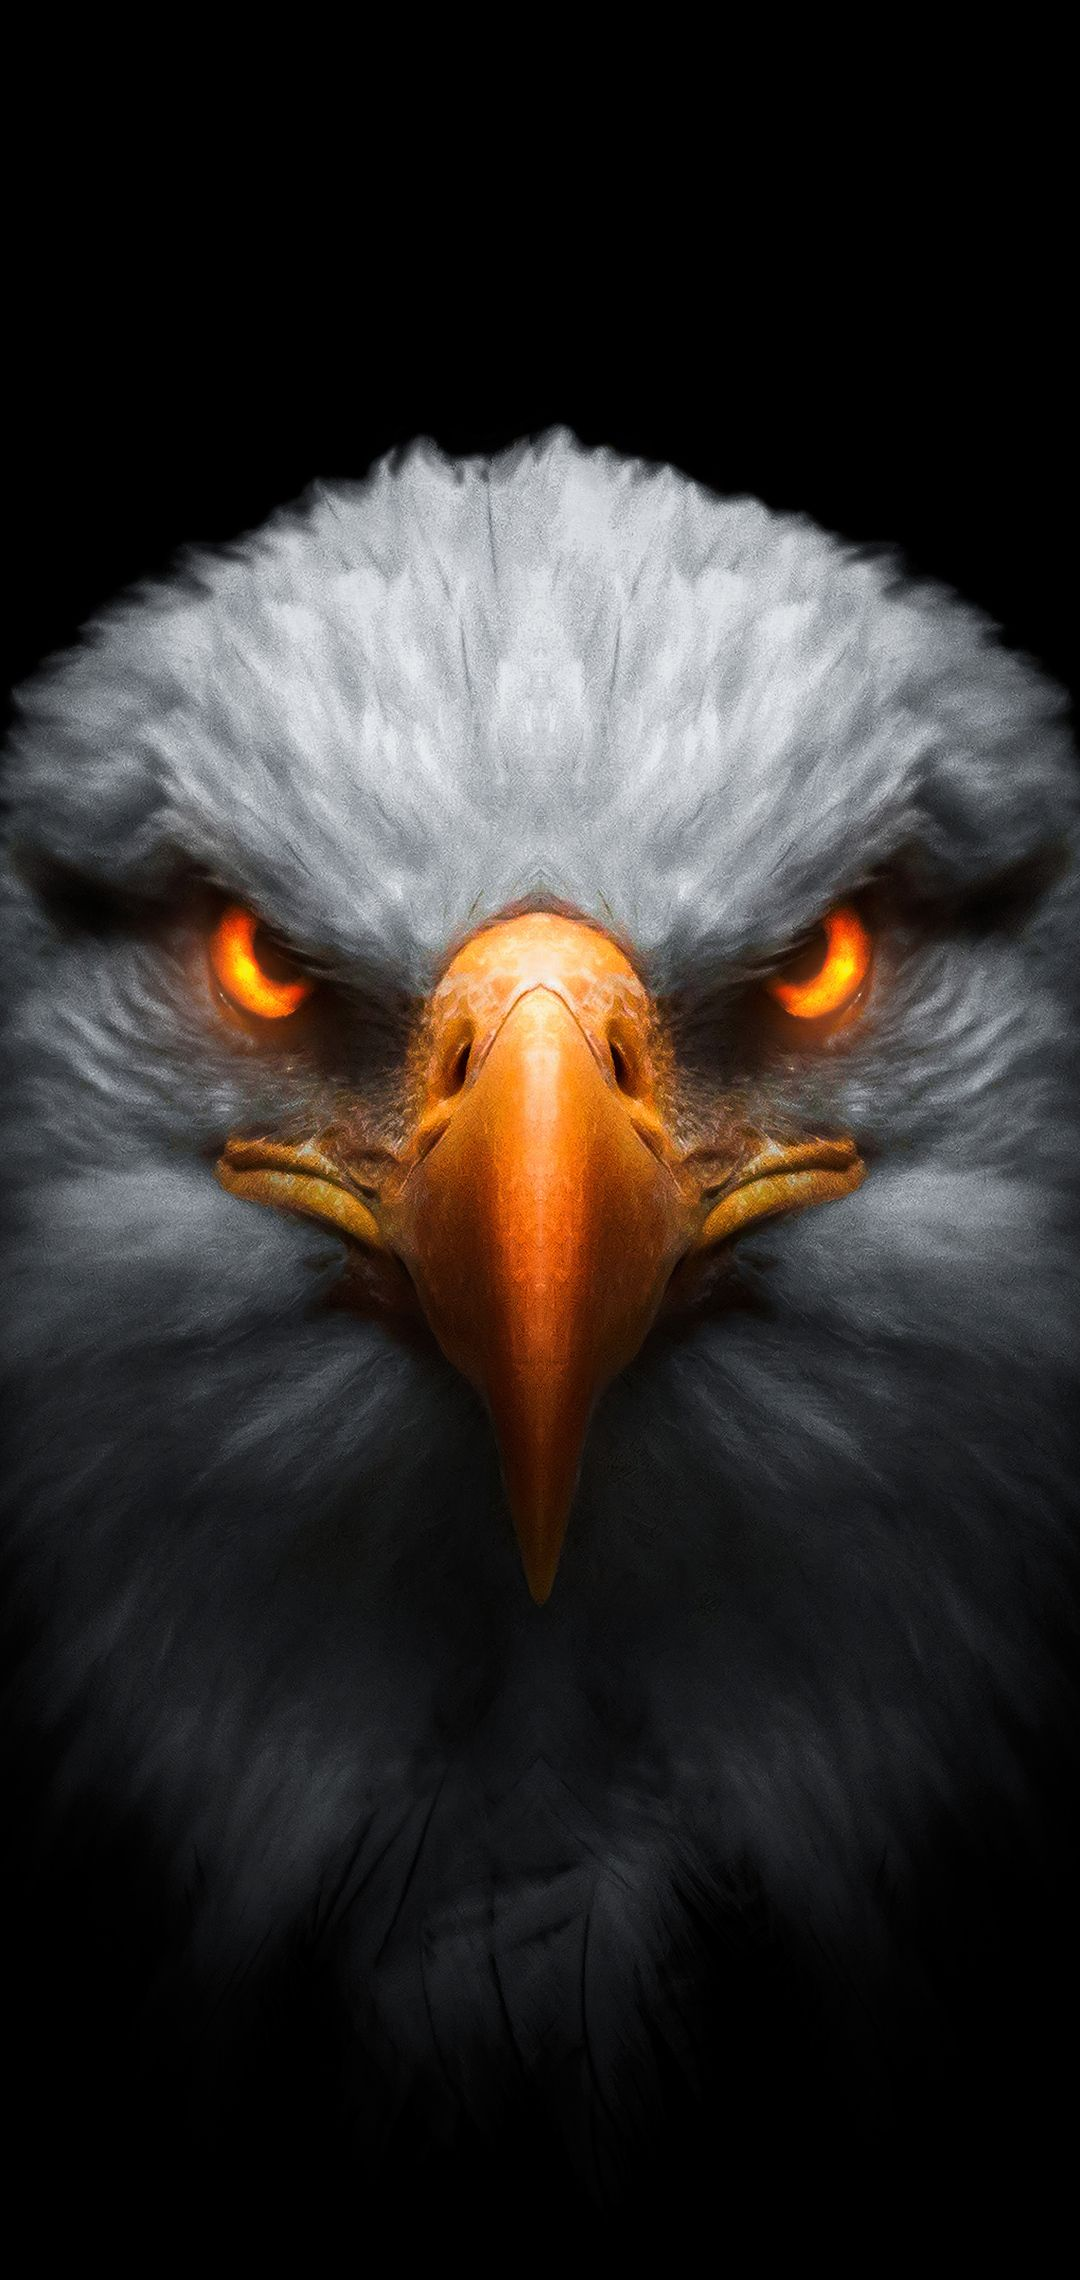 Eagle Red Glowing Eyes In 1080x2280 Resolution Eagle Wallpaper Eagle Images Eagle Pictures Eagle bird full hd wallpapers